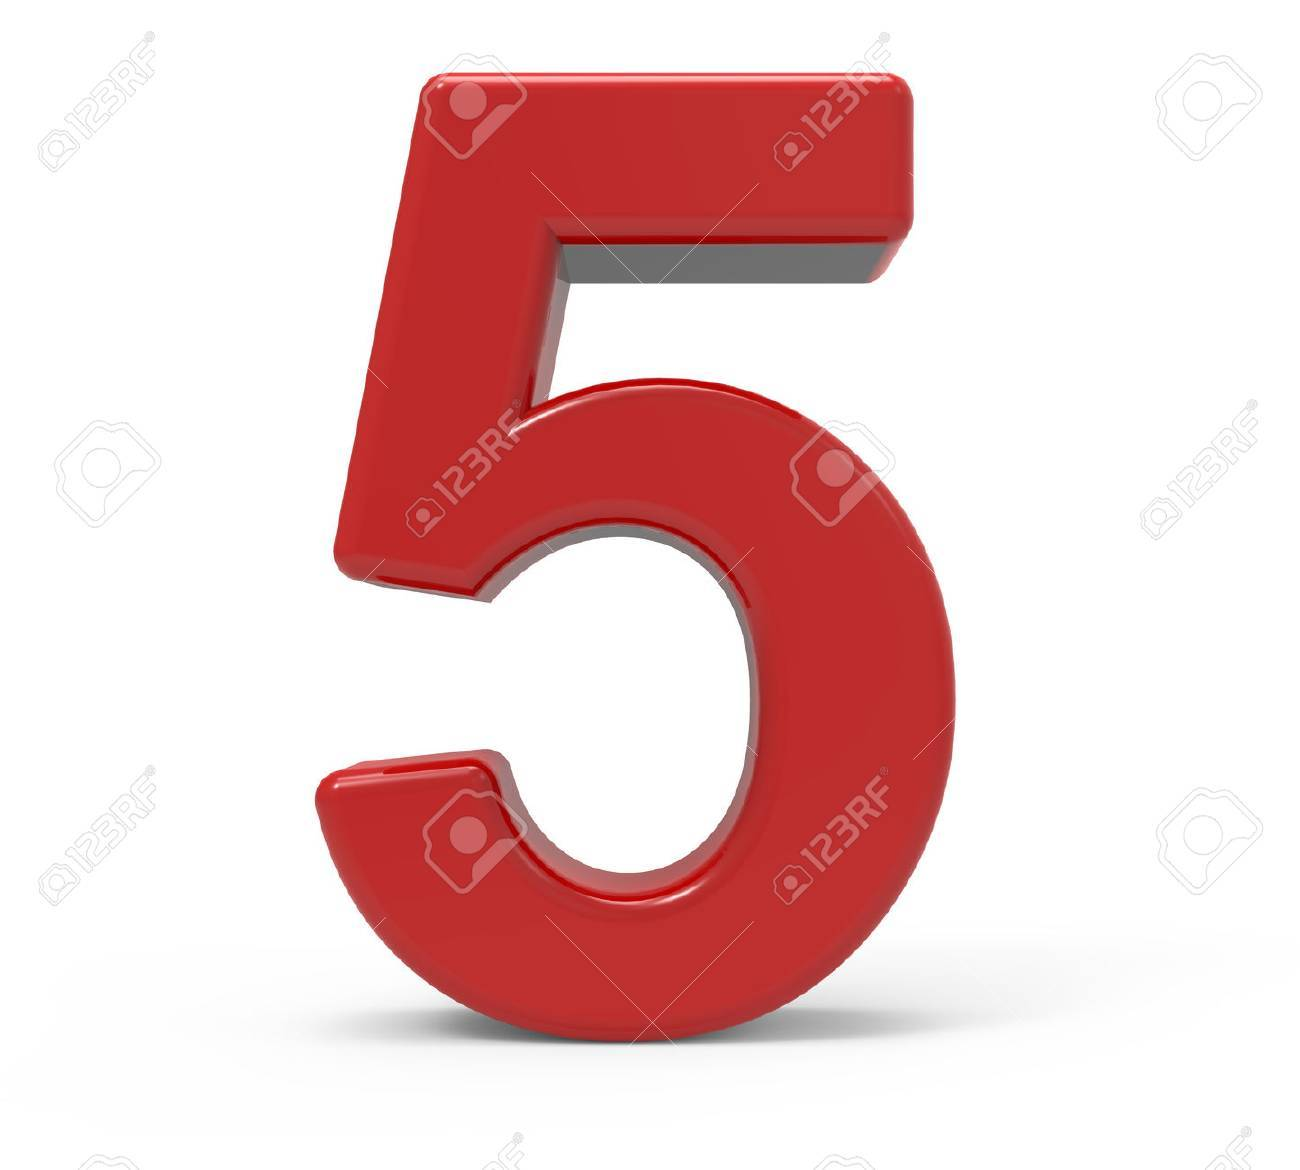 3d rendering red number 5 isolated white background - 64606068